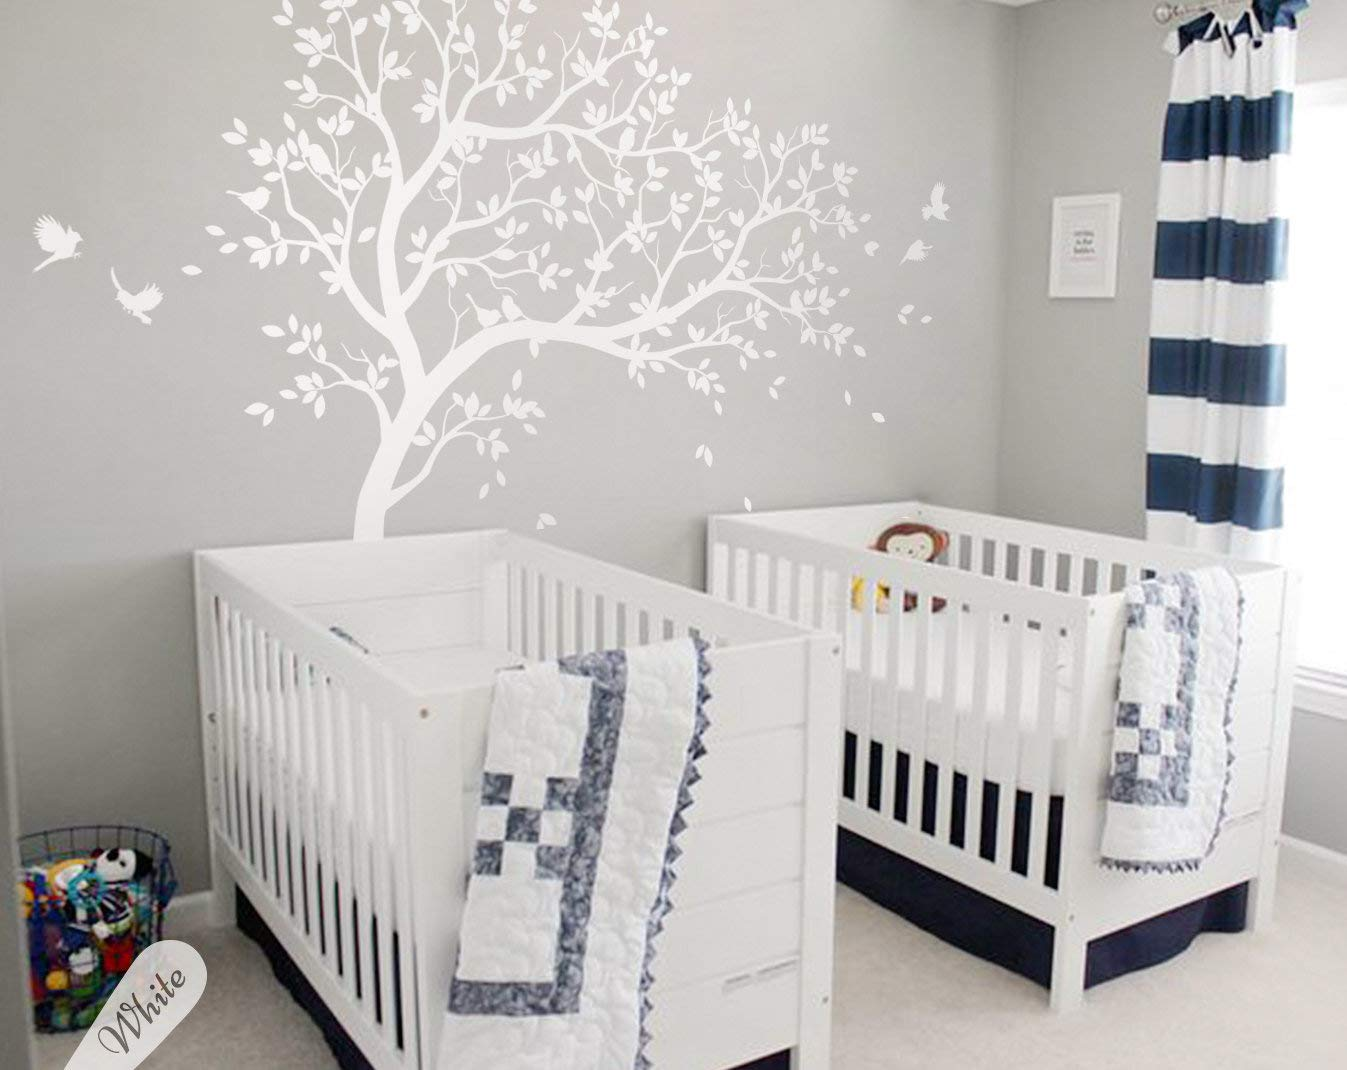 Wall Tattoo Wall Sticker Wall Decal Children Room quote request Name Baby w3432